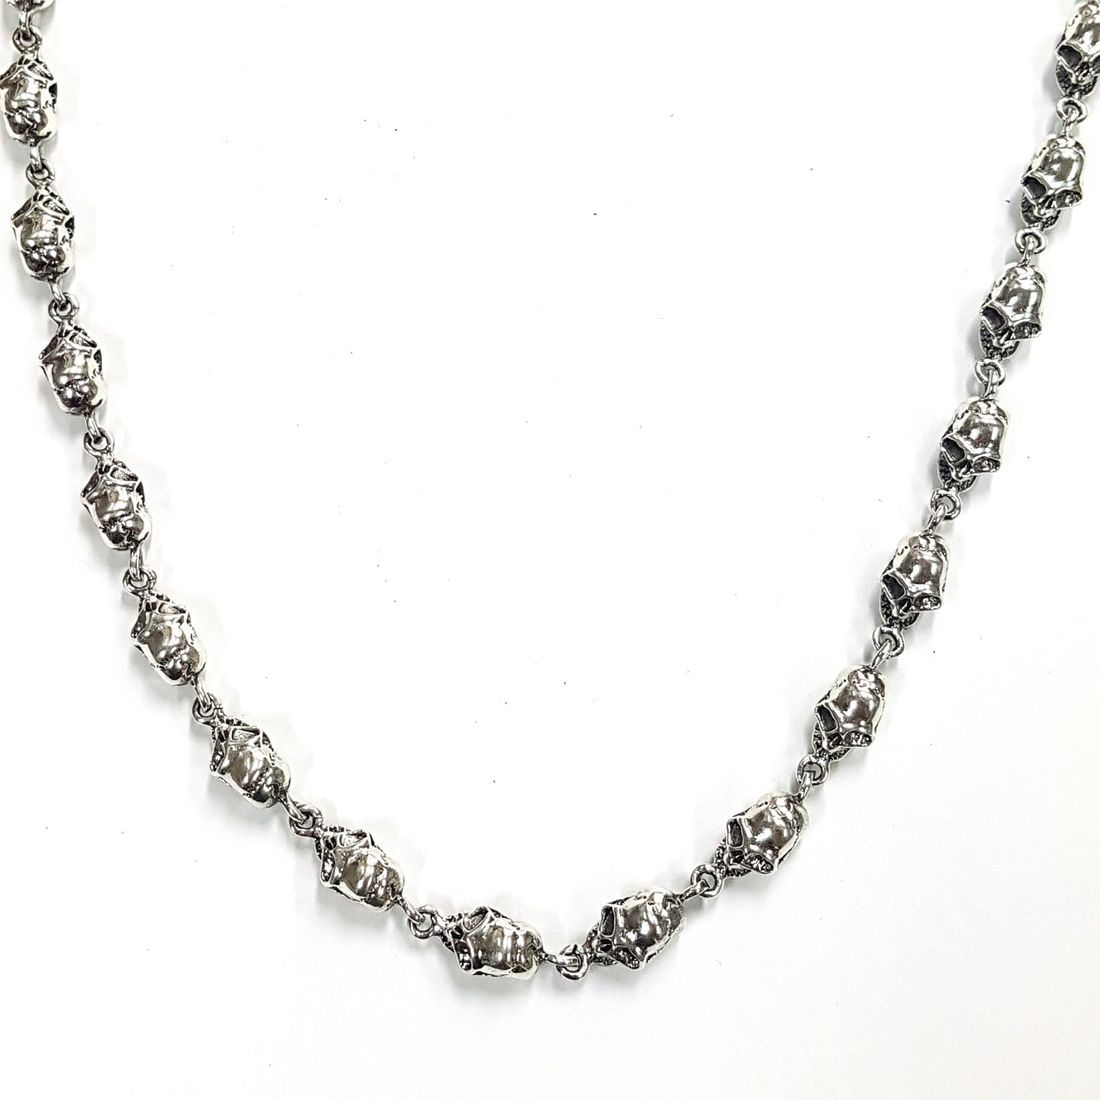 Solid Silver Skull Chain   available at Kazbah online and our Leicester City Centre Shop